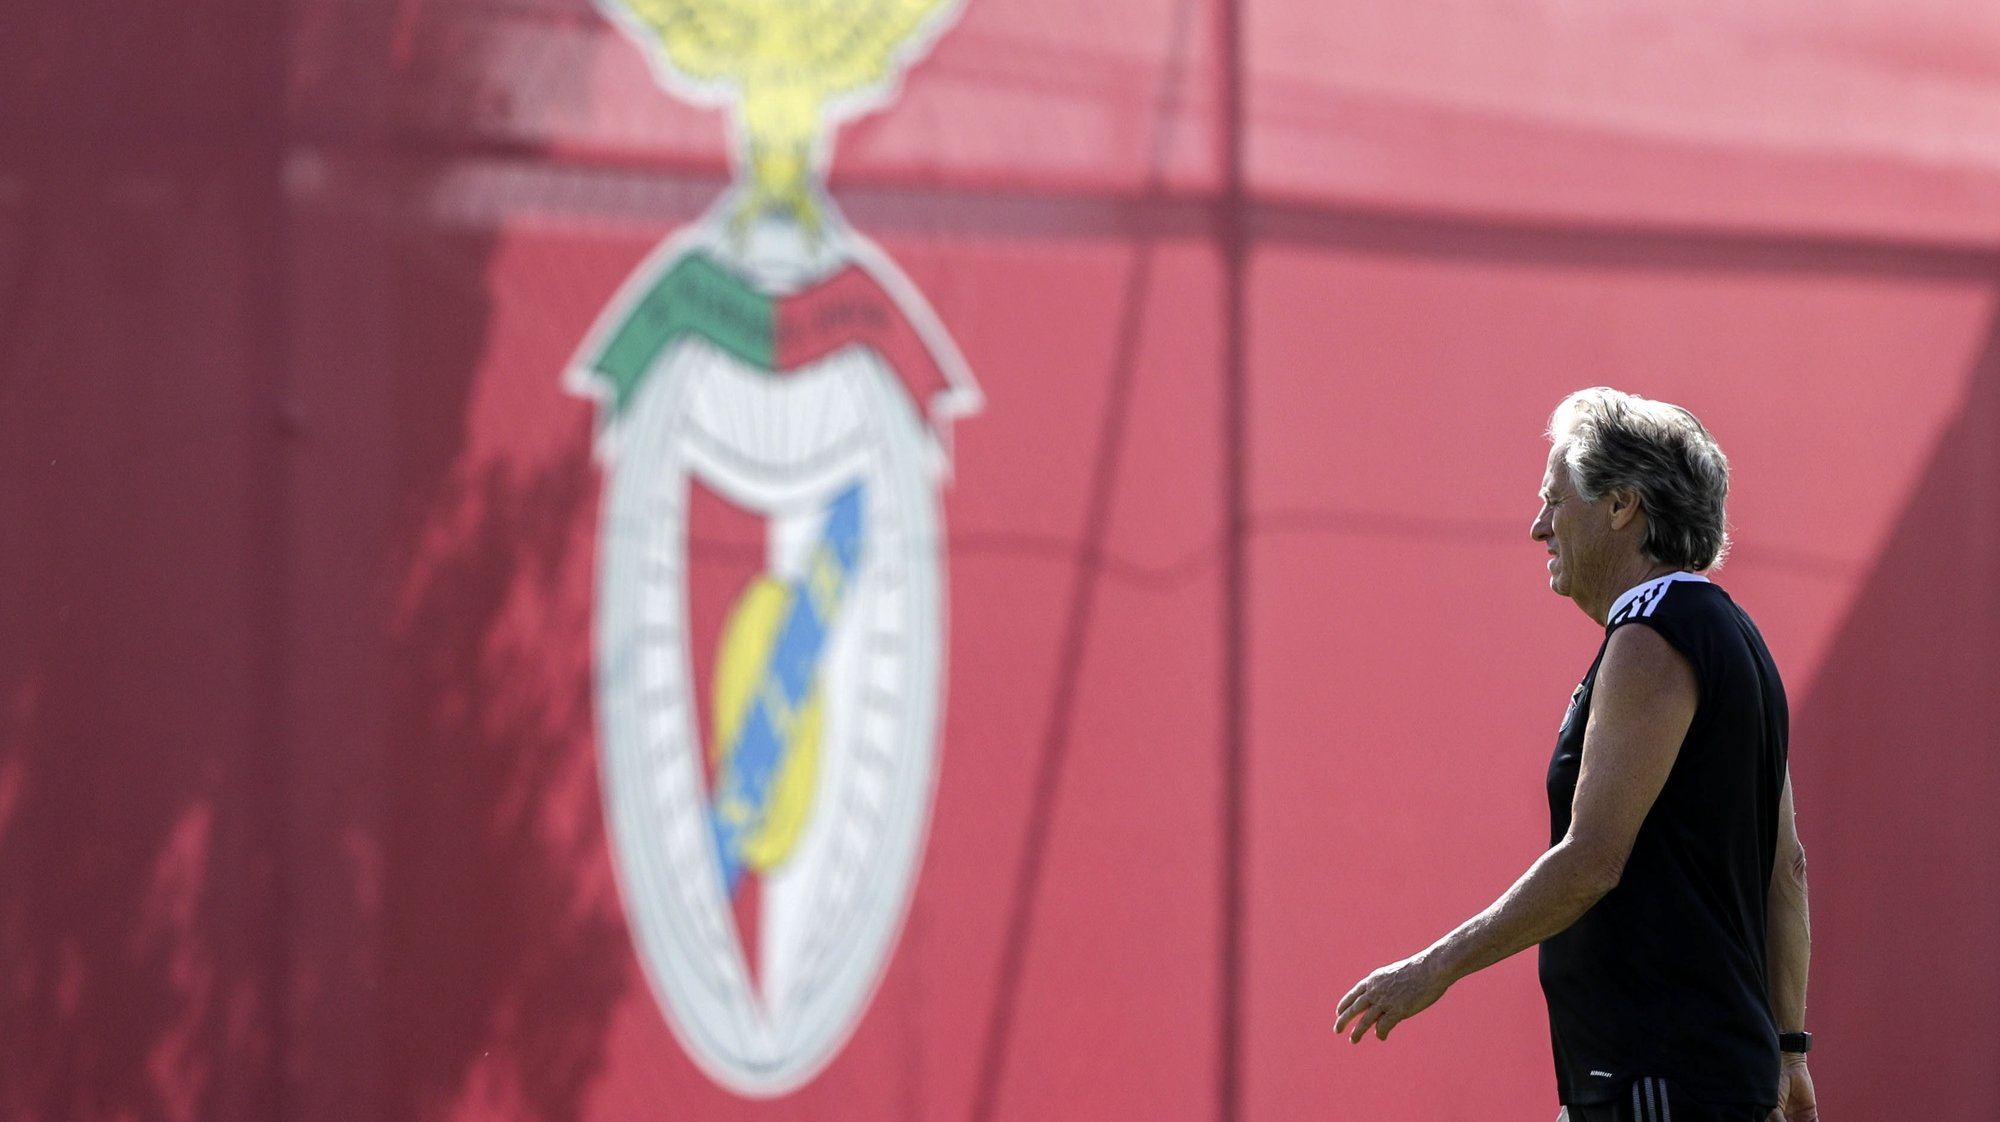 Benfica's head coach Jorge Jesus leads a training session at Seixal Campus, Portugal, 23 August 2021. Benfica will face PSV Eindhoven in a UEFA Champions League play-off second leg soccer match on 24 August 2021. TIAGO PETINGA/LUSA